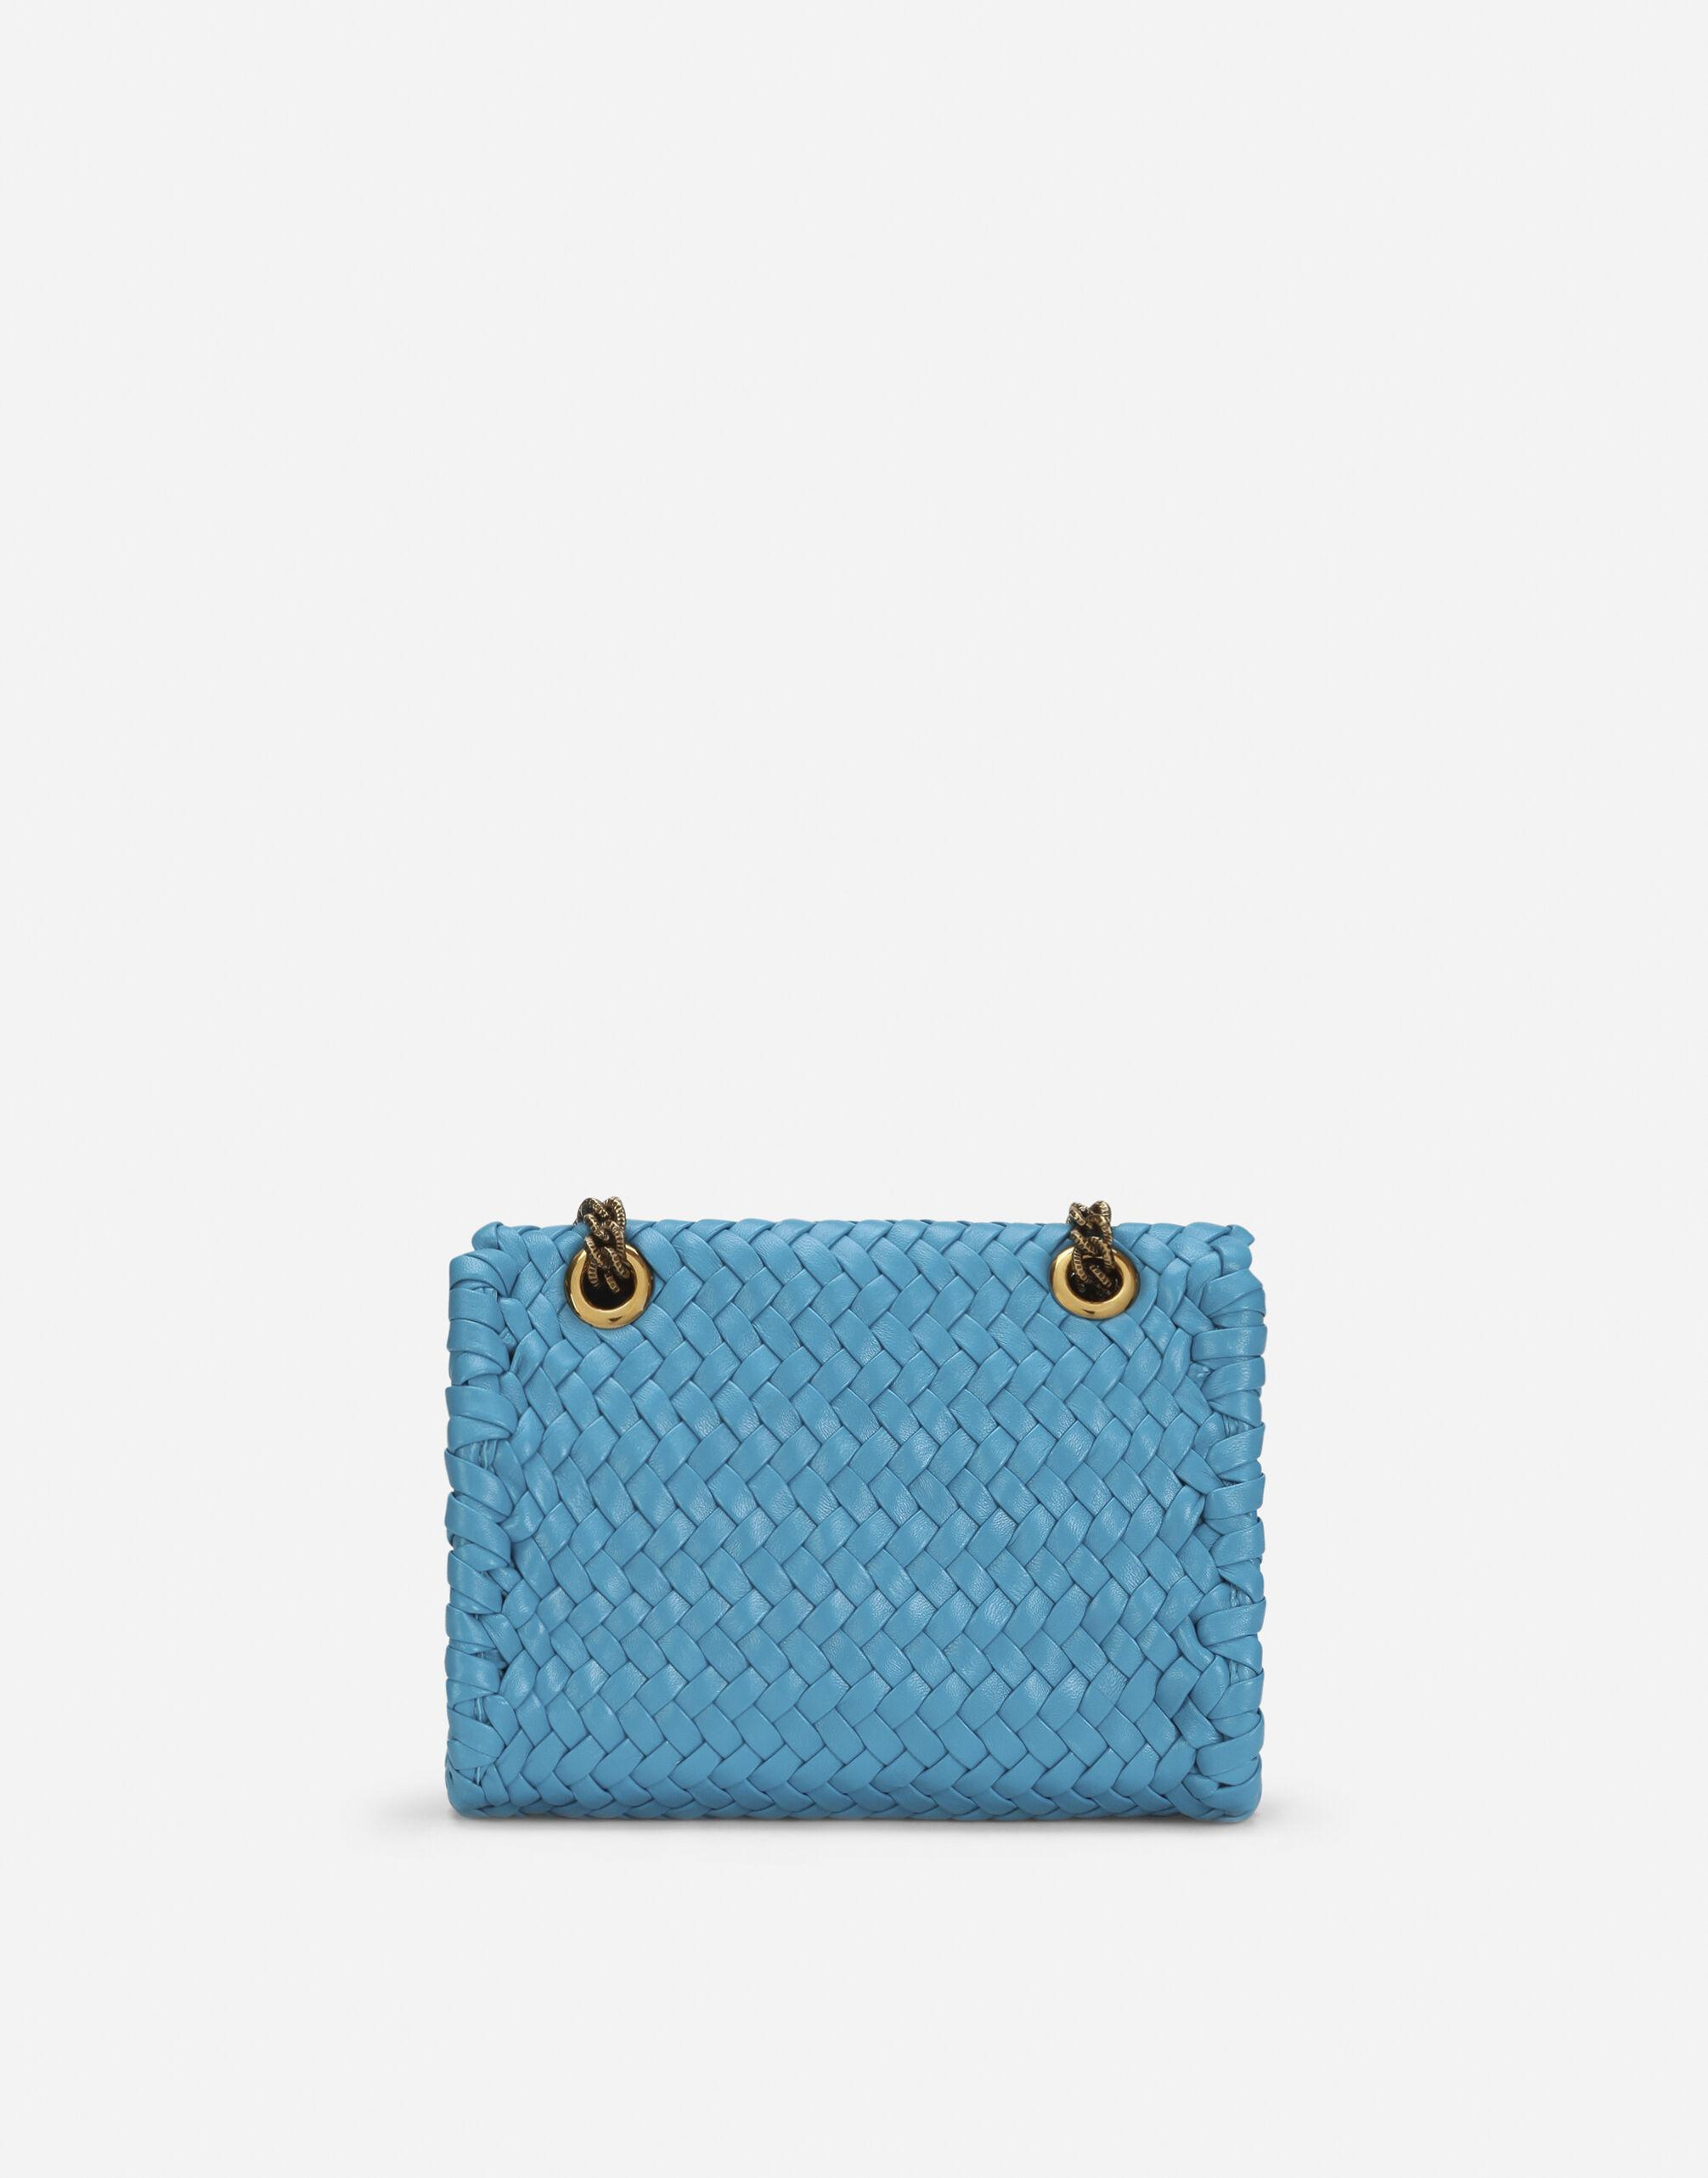 Small Devotion shoulder bag in woven nappa leather 2